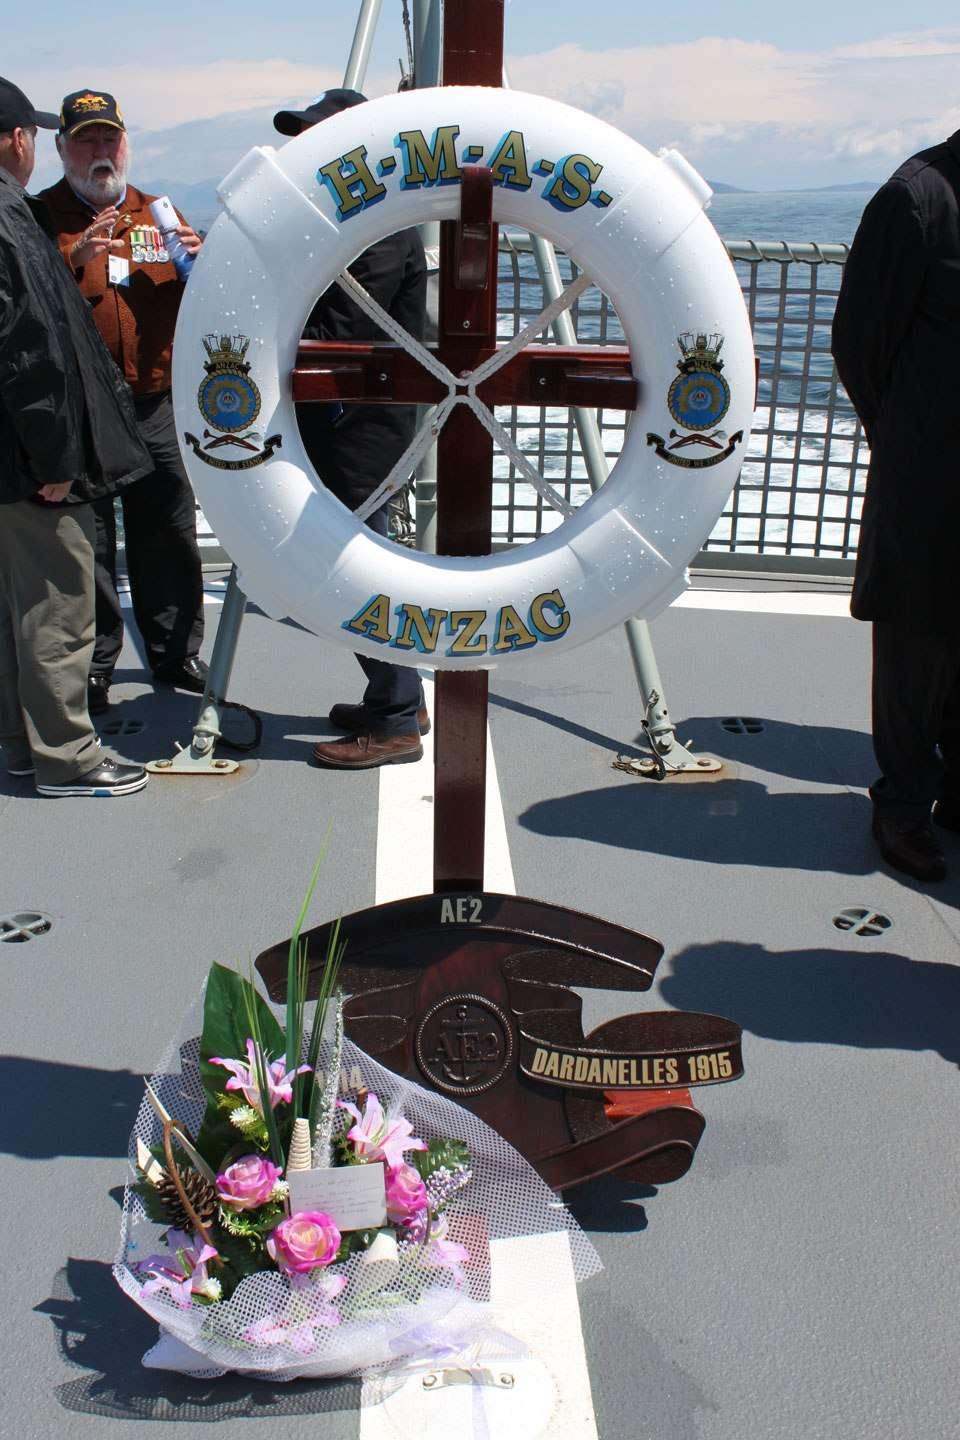 A wreath placed aboard HMAS Anzac by descendants of AE2's crewmen